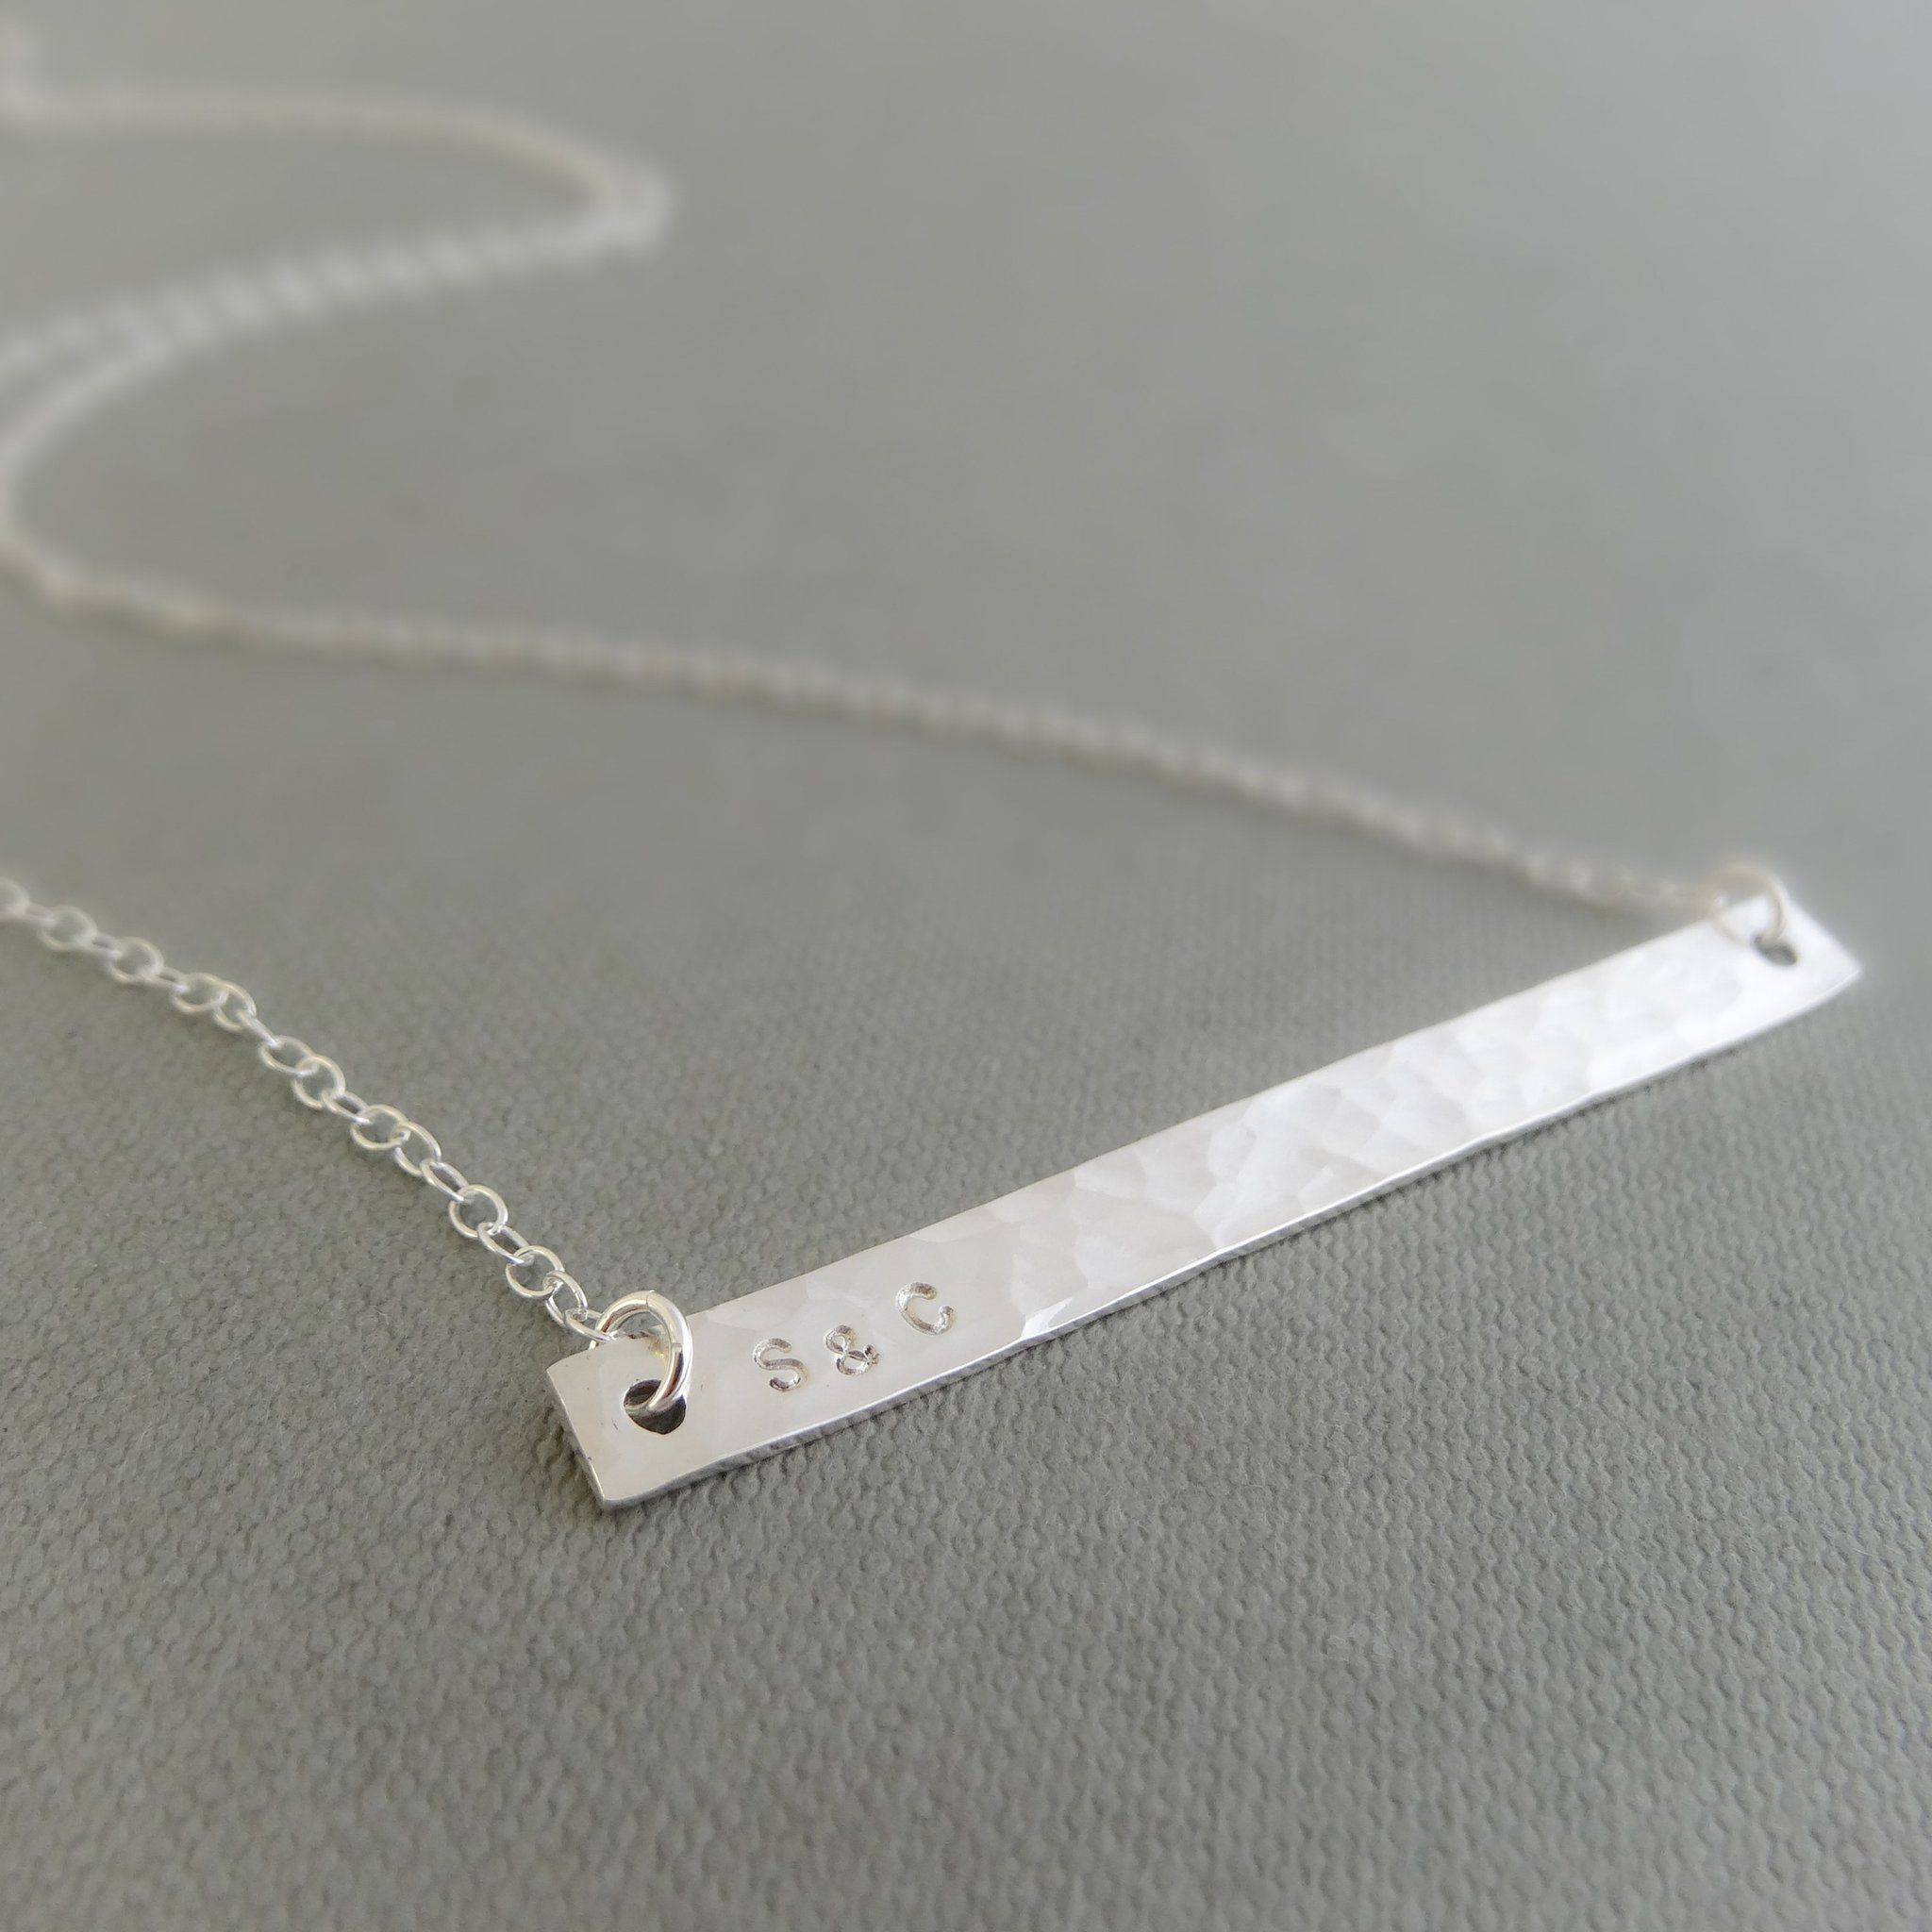 Silver personalised initial bar necklace